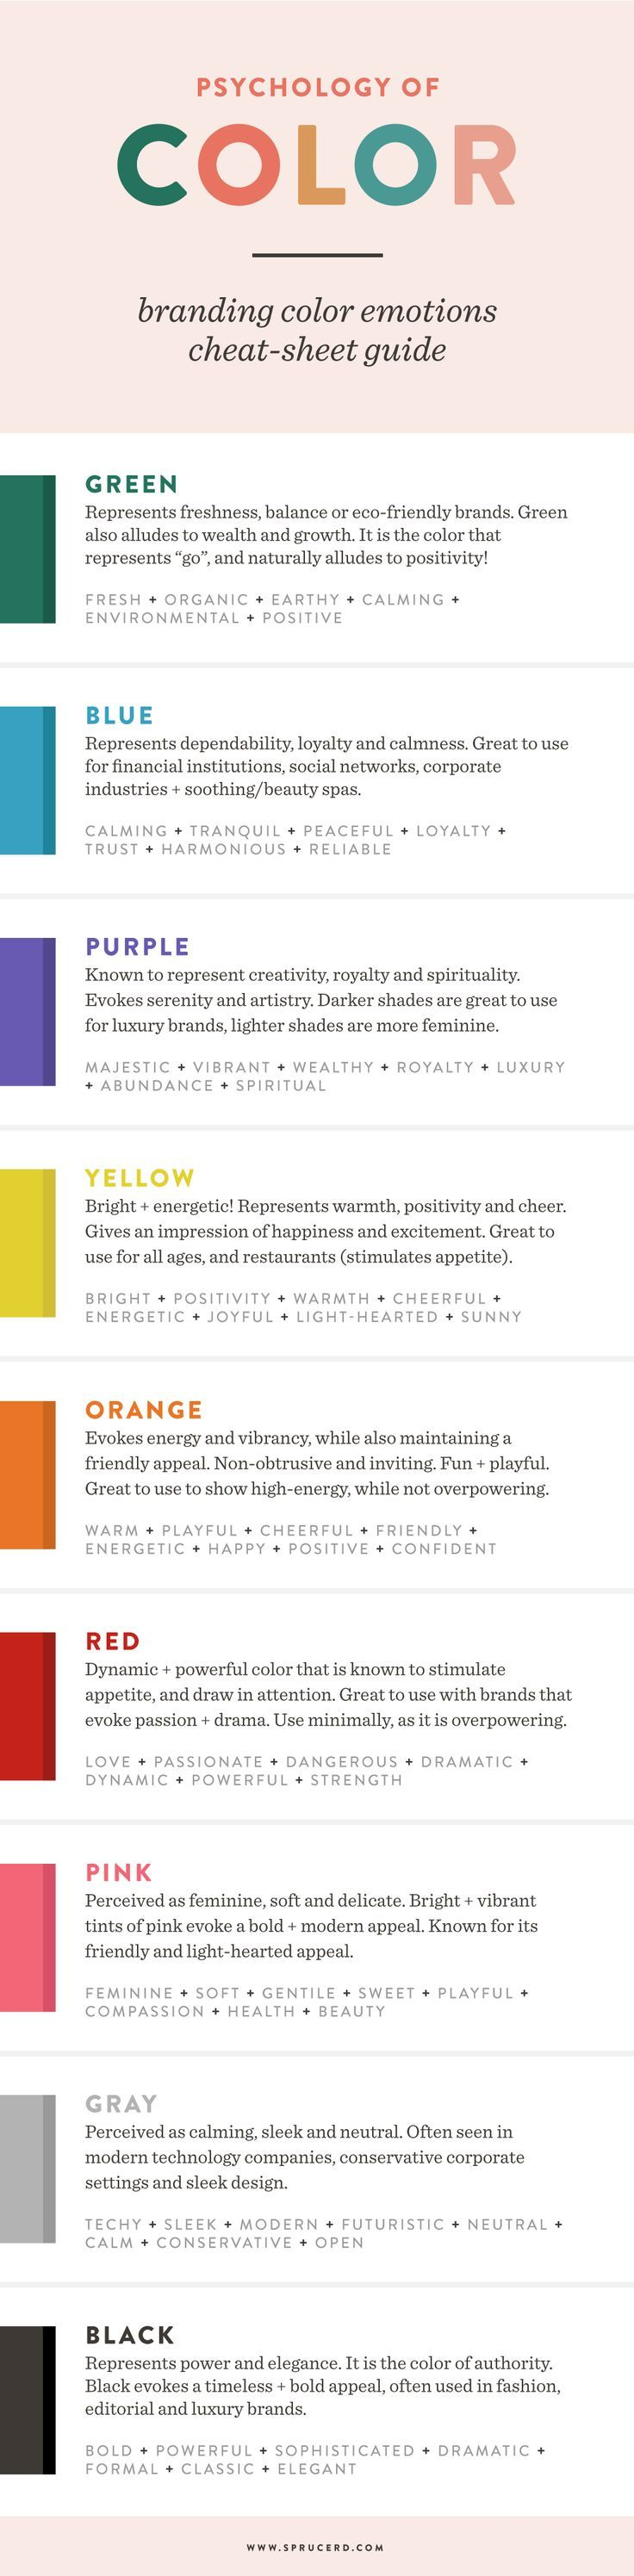 Looking for the right color(s) for your design or brand. Here's an infographic that may help!